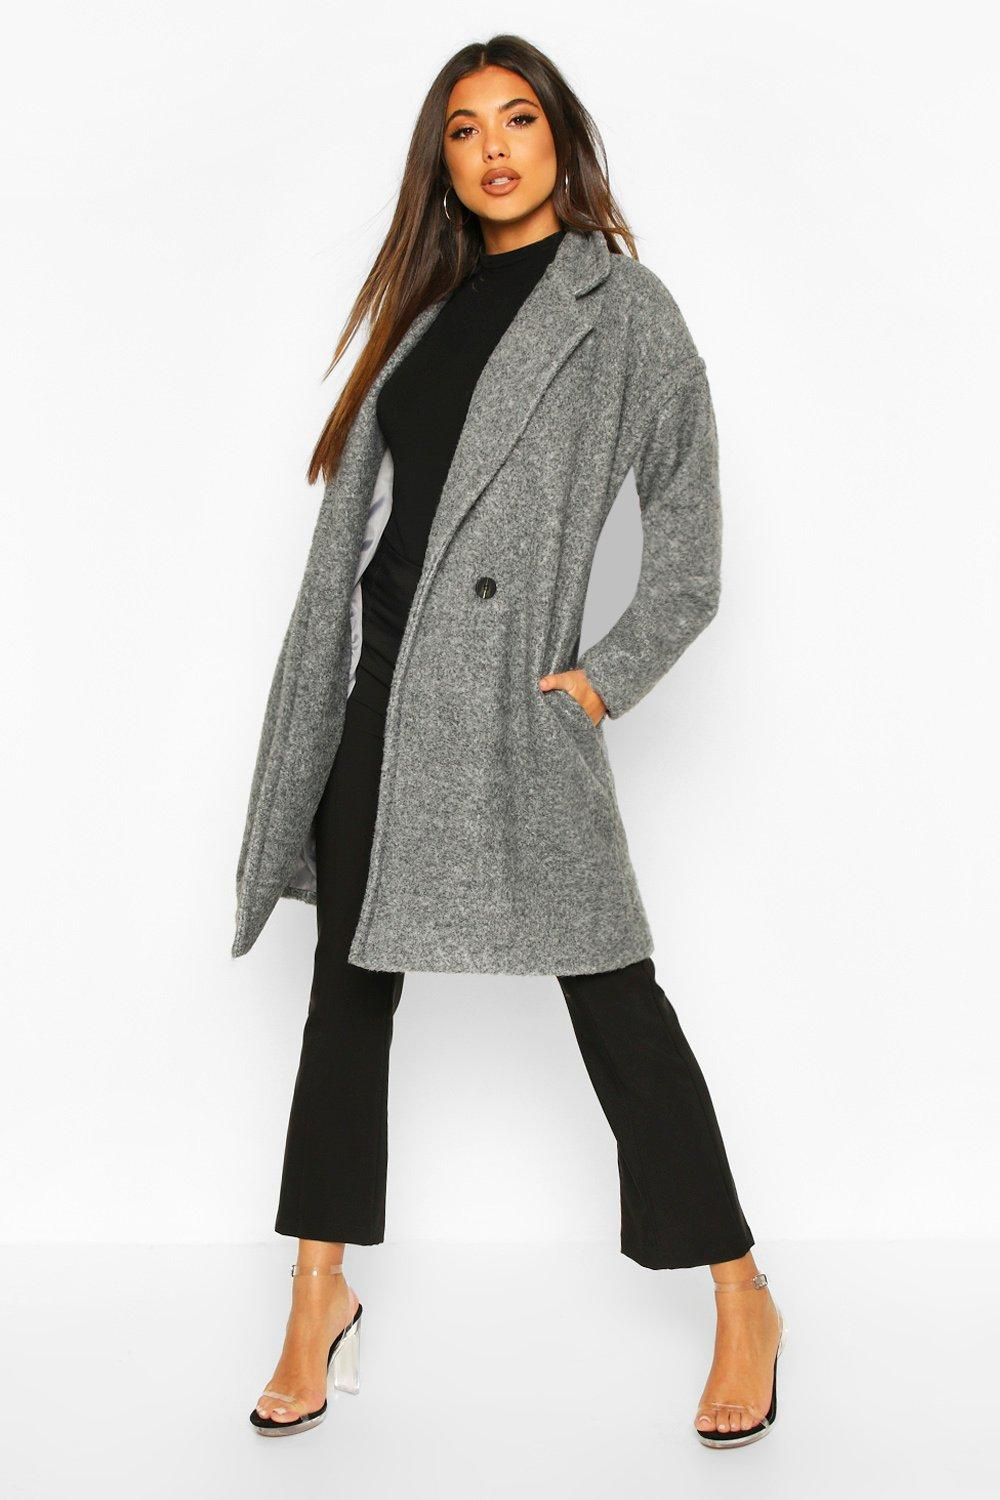 boohoo Womens Luxe Brushed Wool Look Button Through Coat - Grey - 8, Grey